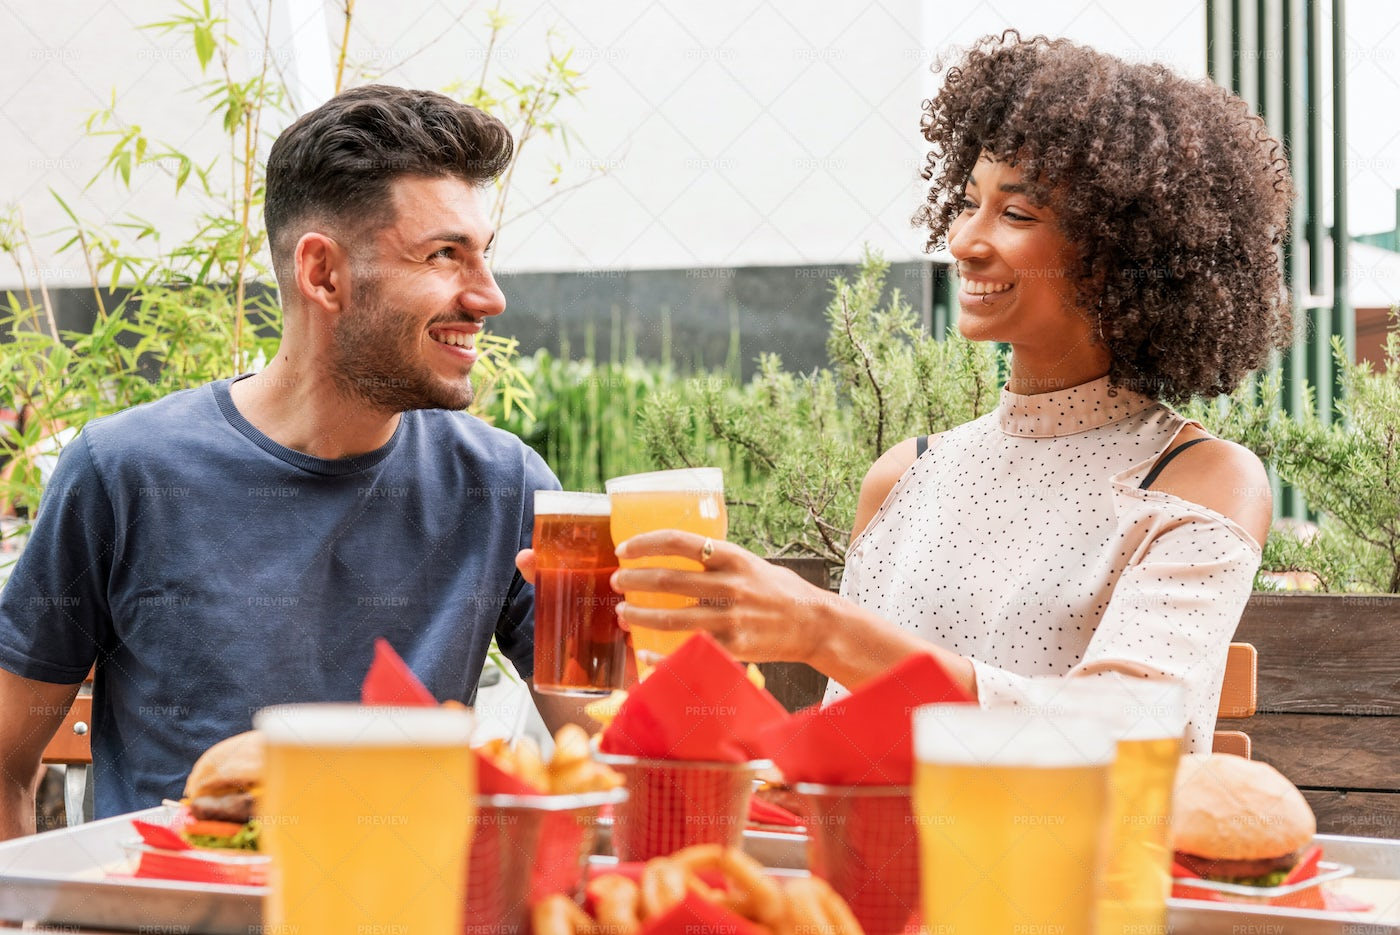 Couple Celebrating With Beer: Stock Photos